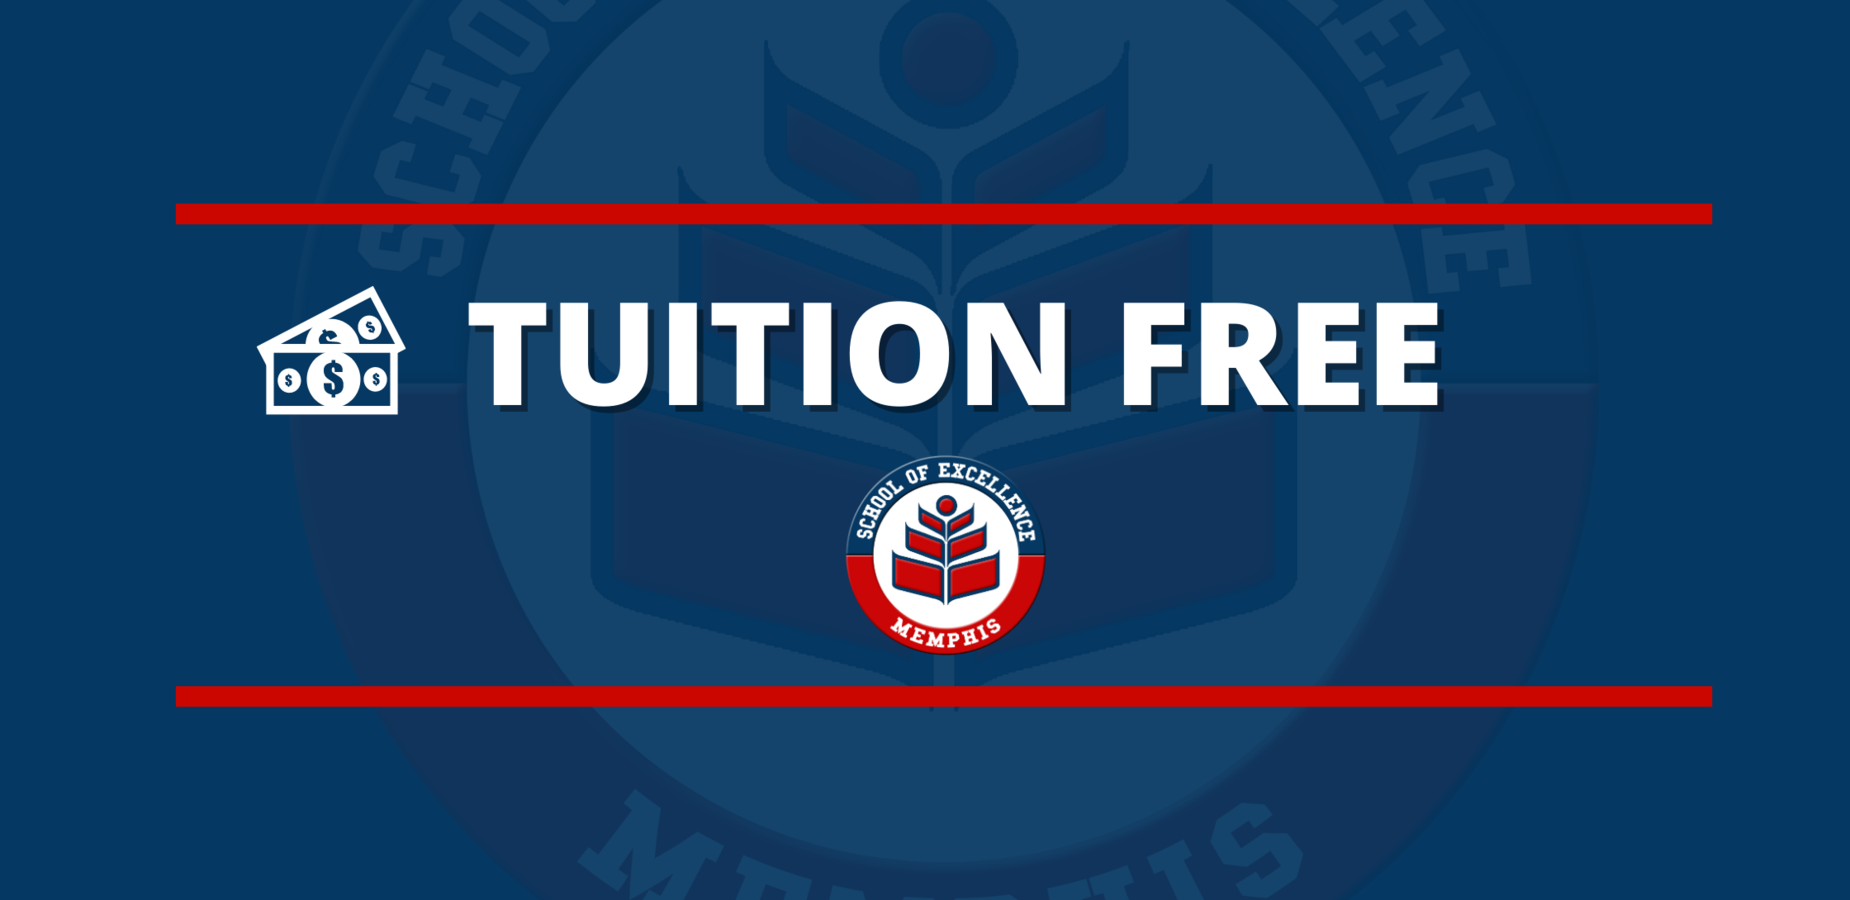 Tuition Free